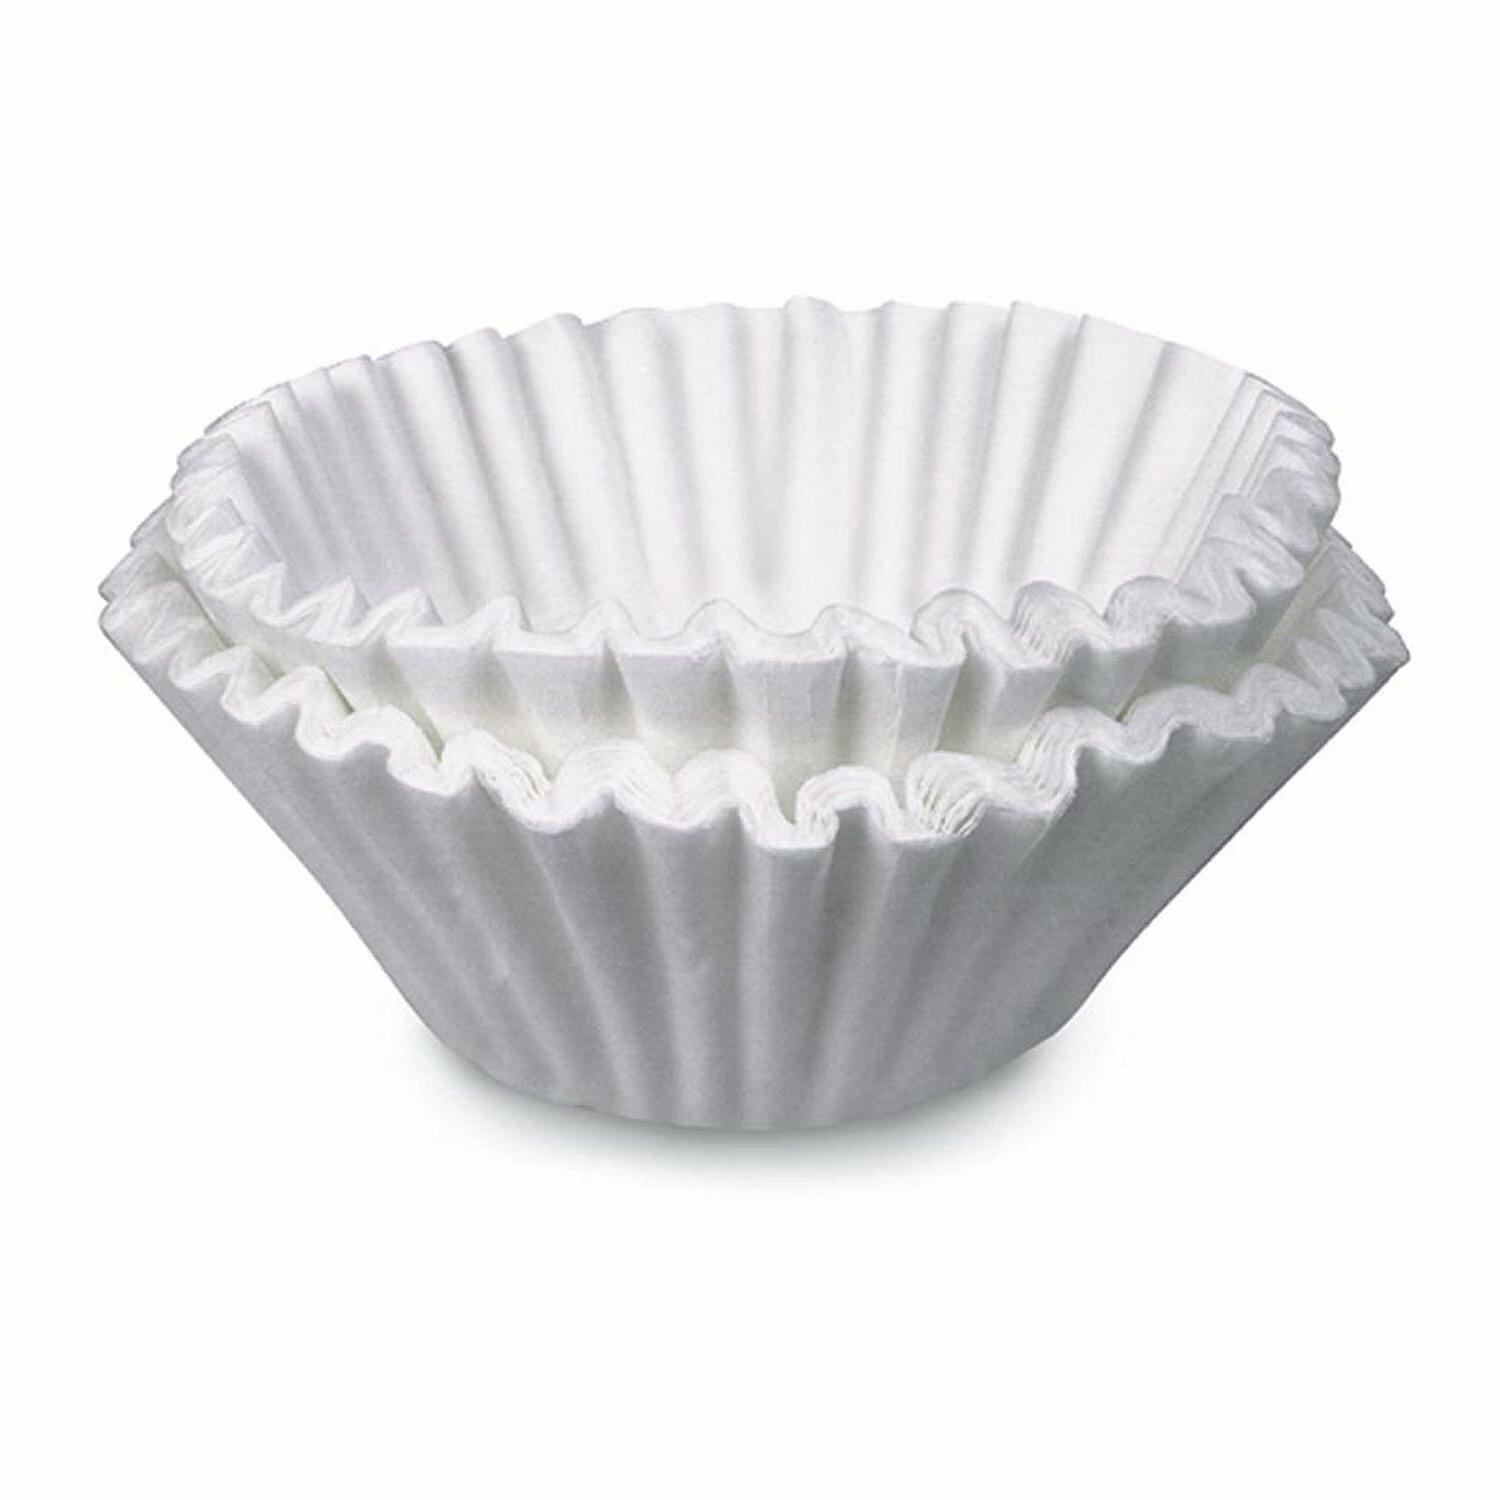 Brew-Rite Coffee Filters  - Commercial - 12 Cup - 1,000 coun